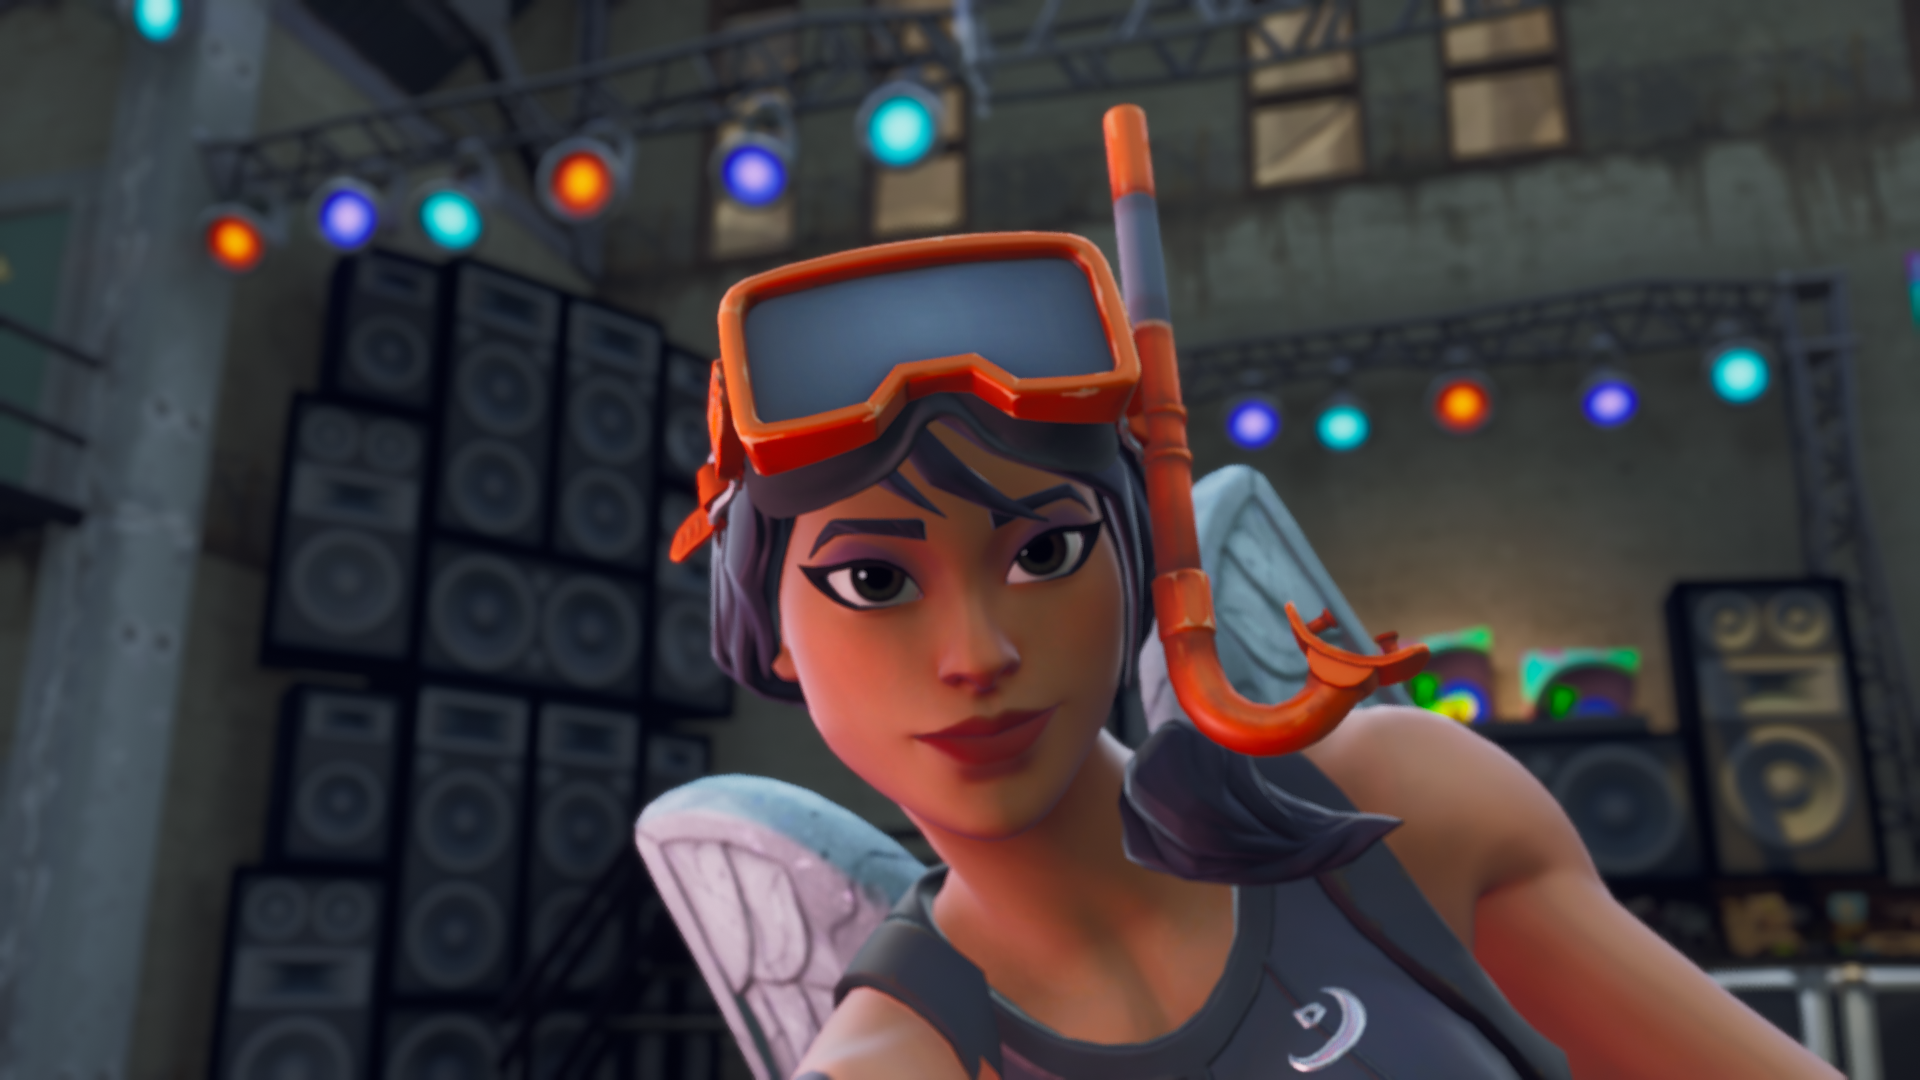 Pin By La Ranaaaa On Fortnite Epic Games Fortnite Battle Royale Game Skin Images